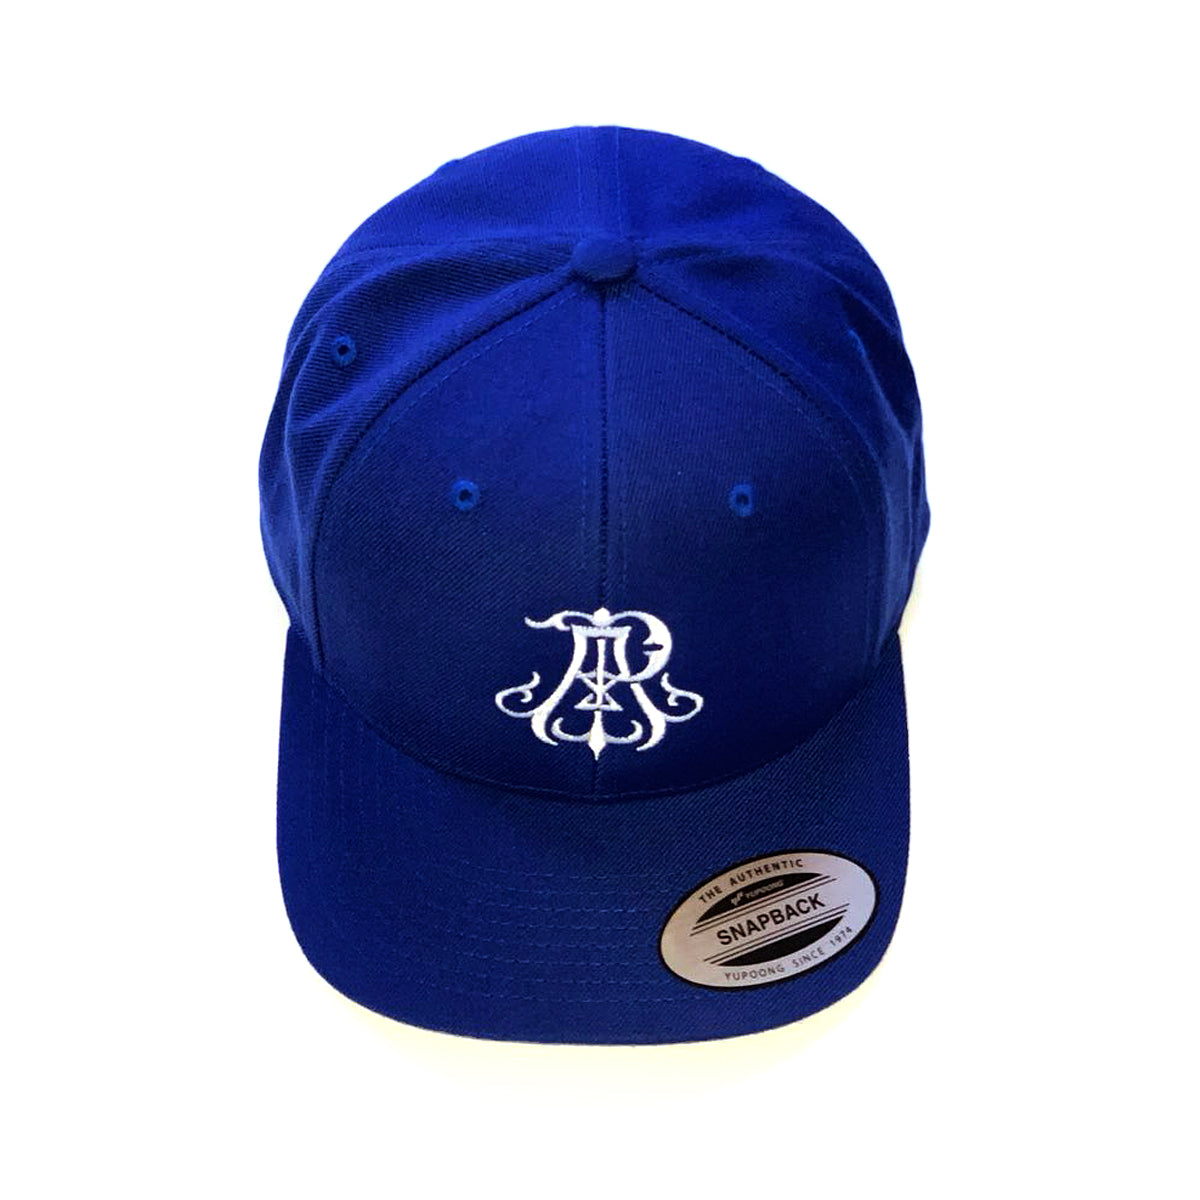 Monogram Snapback Hat - Blue